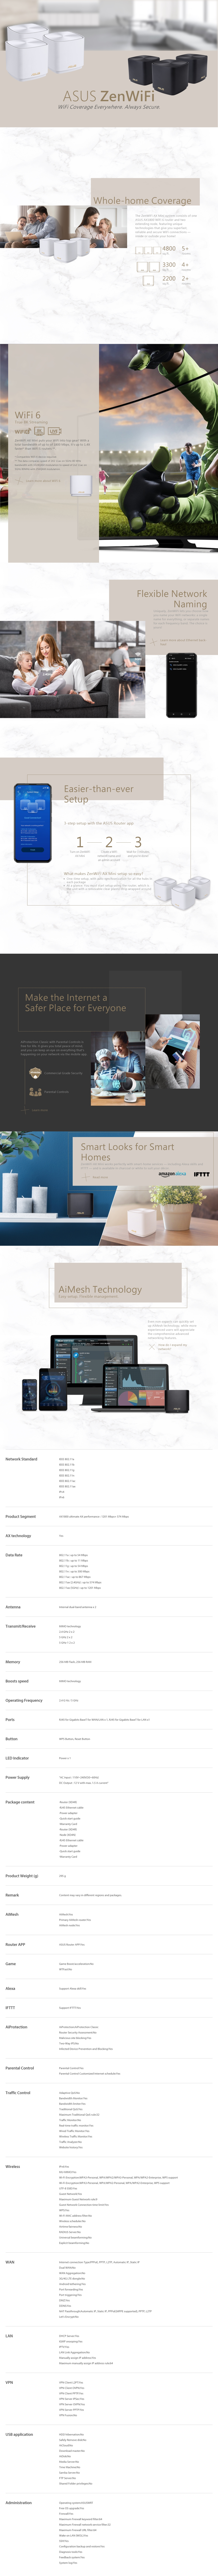 A large marketing image providing additional information about the product Asus ZenWiFi AX1800 Mini XD4 Mesh Routers - 2 Pack - Additional alt info not provided